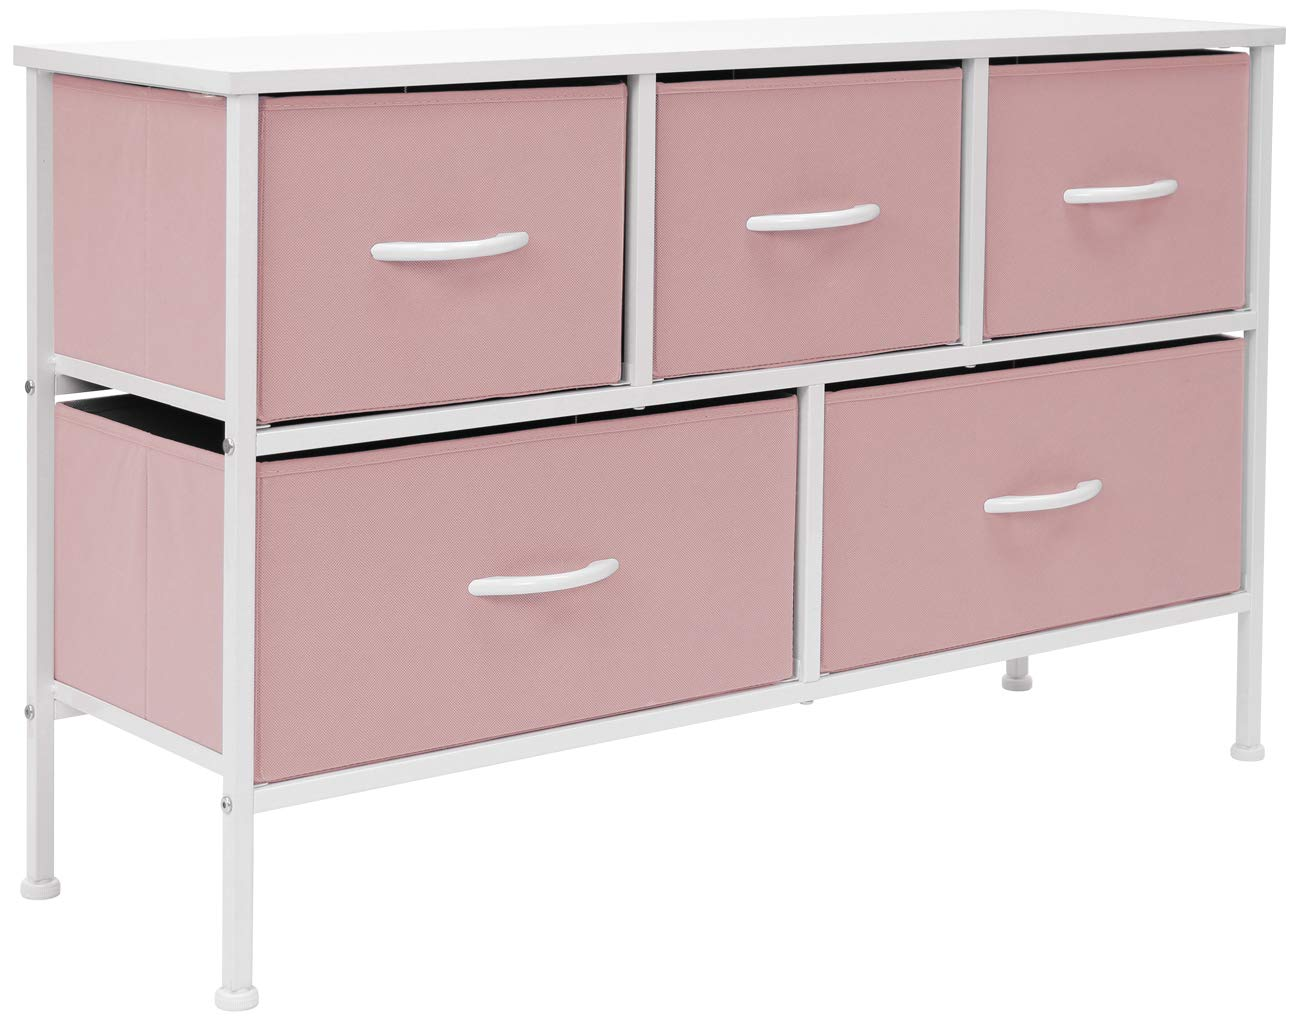 Sorbus Dresser with 5 Drawers - Furniture Storage Chest for Kid's, Teens, Bedroom, Nursery, Playroom, Clothes, Toys - Steel Frame, Wood Top, Fabric Bins (Pastel Pink)